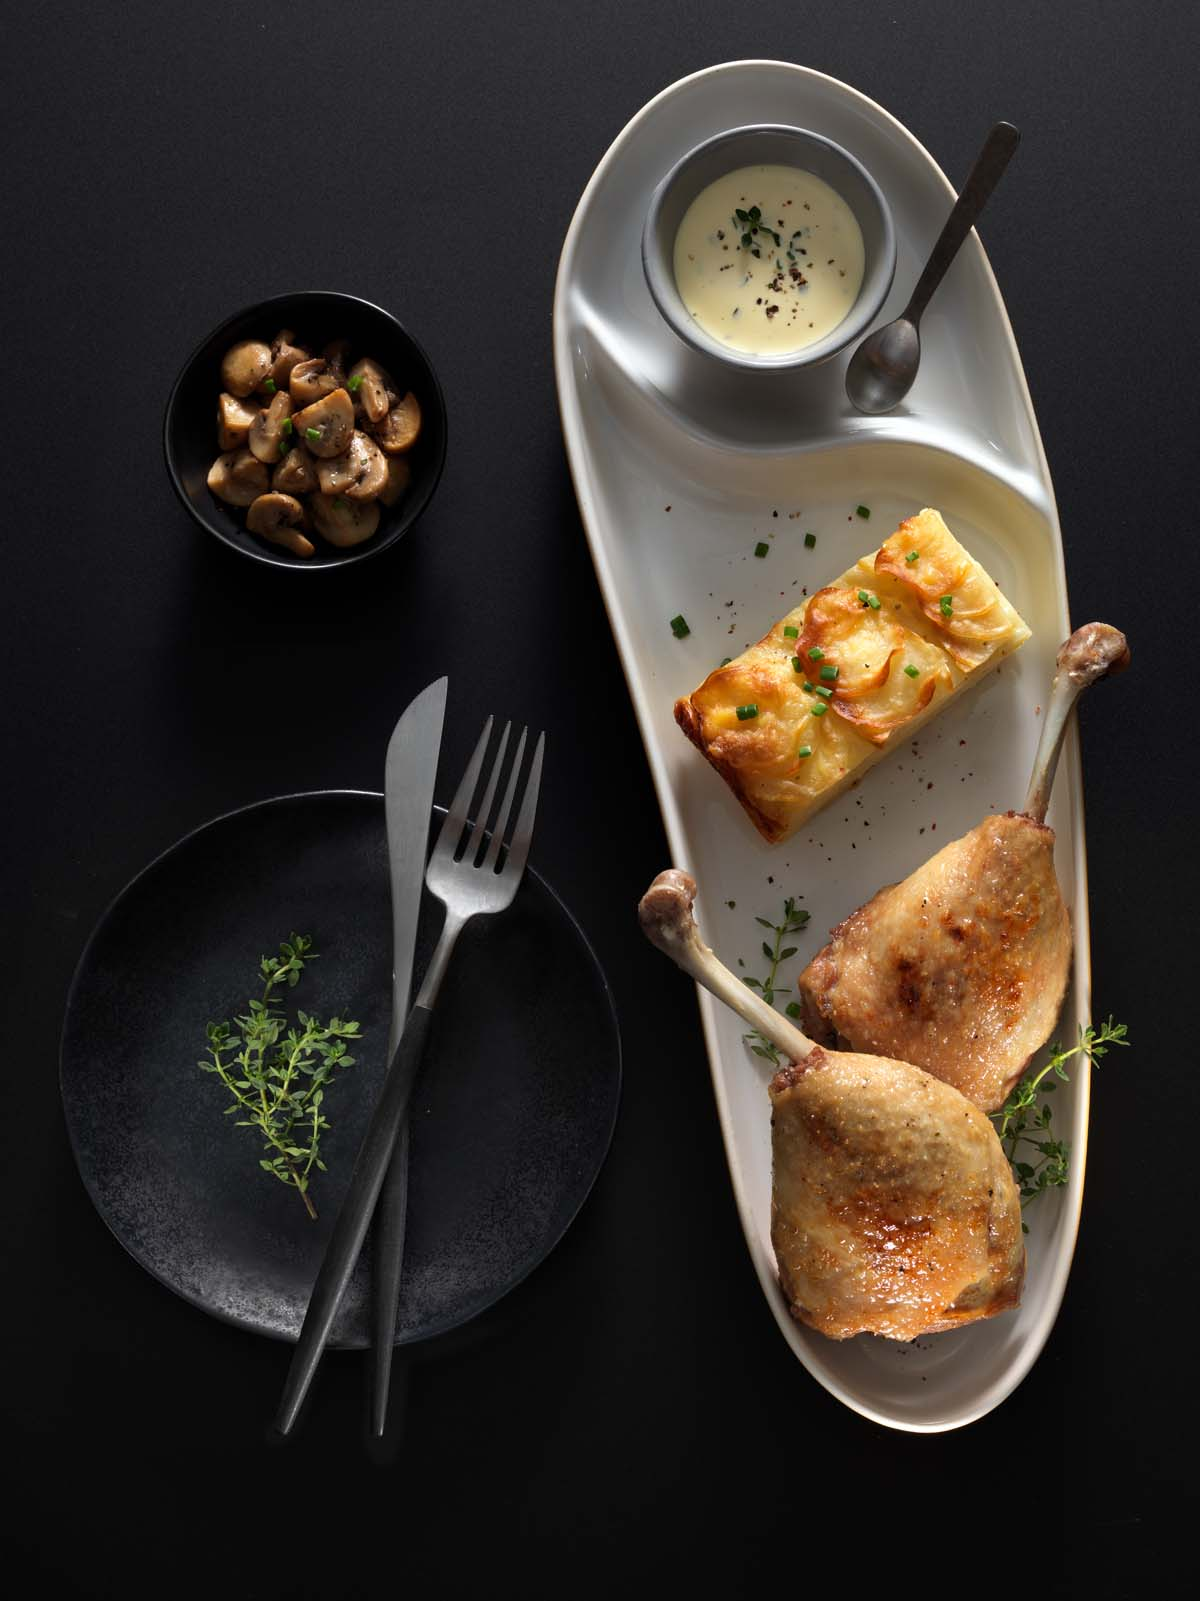 Food photography image by Karl Taylor